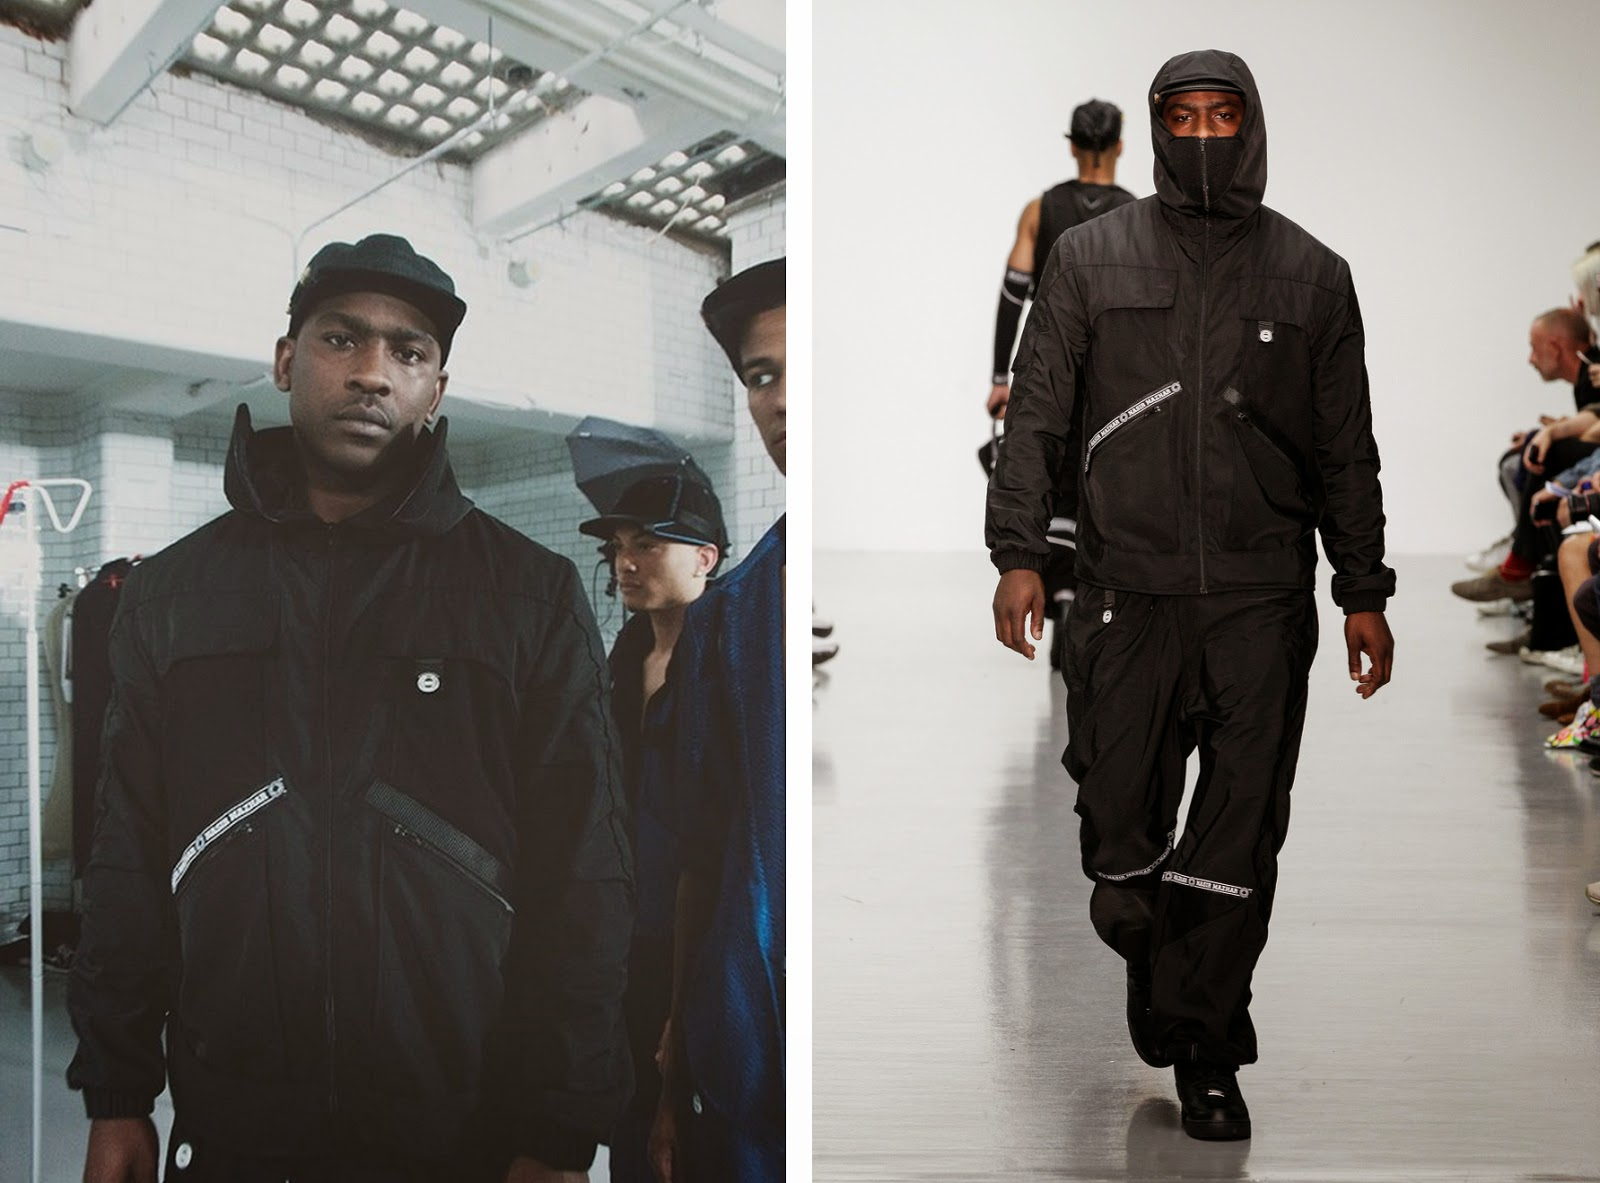 Emlgzhng Nasir Mazhar As The Epitome Of The British Roadman